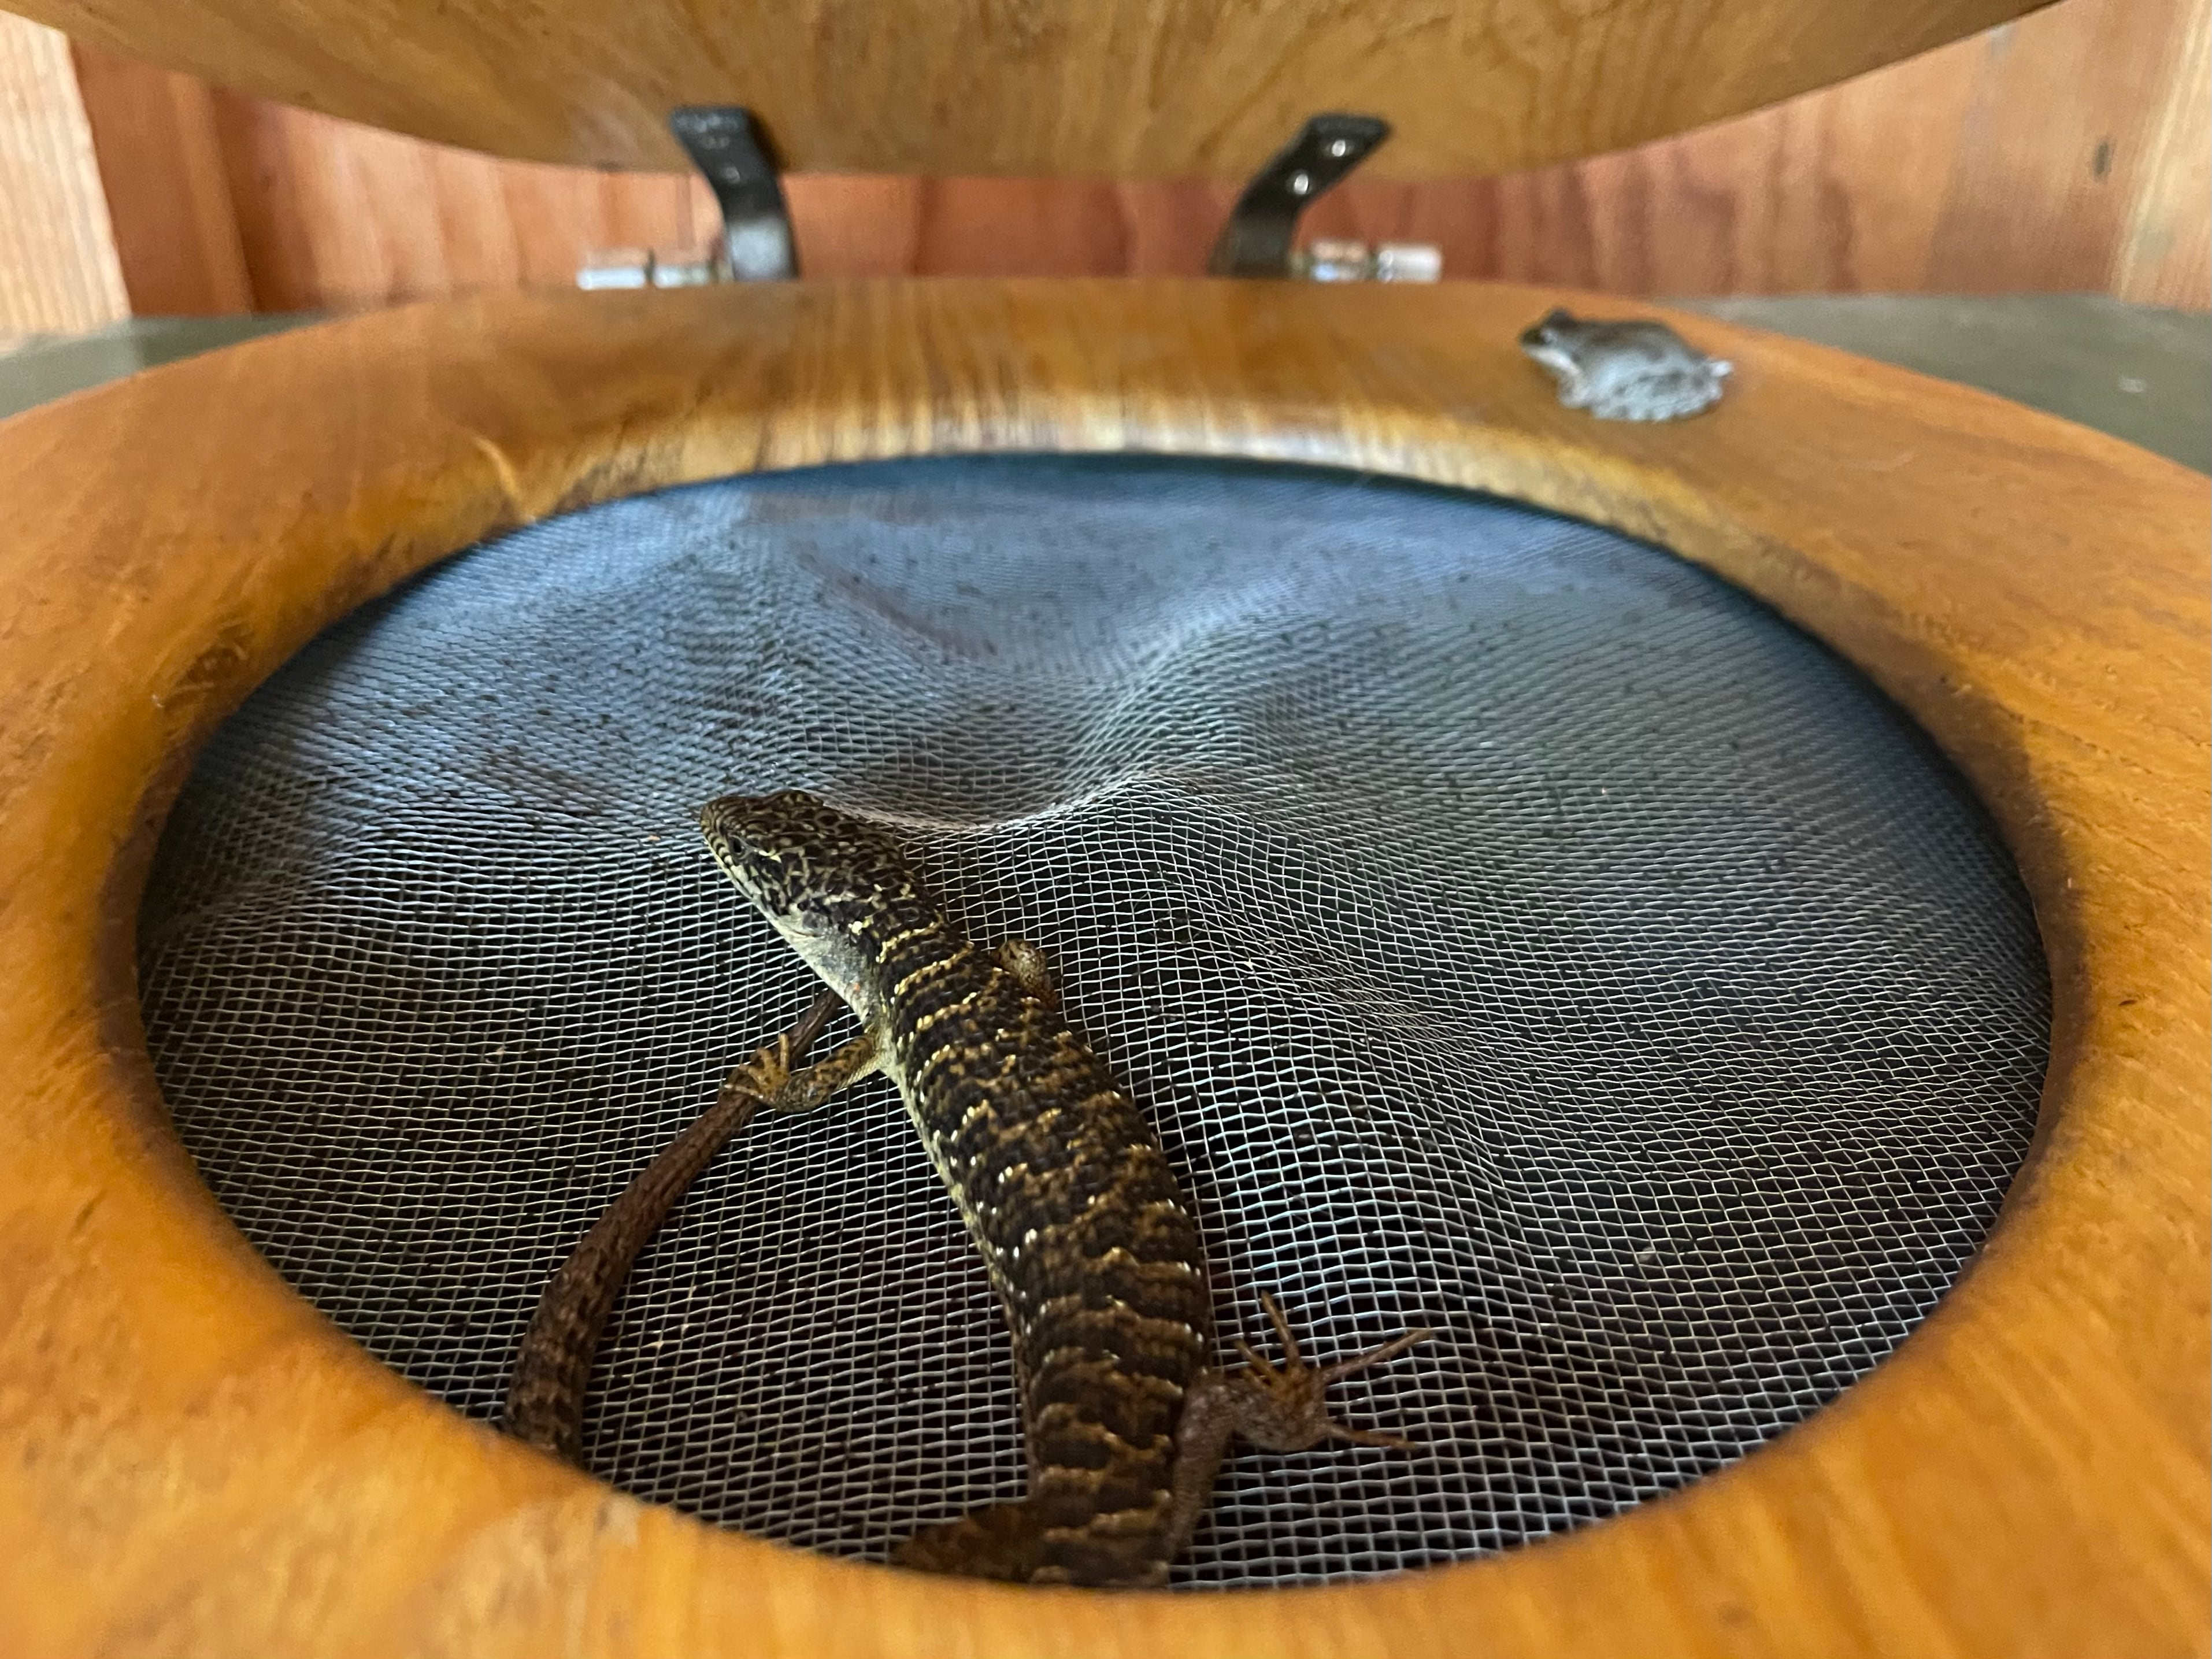 a lizard and a frog sitting on the seat of a commode